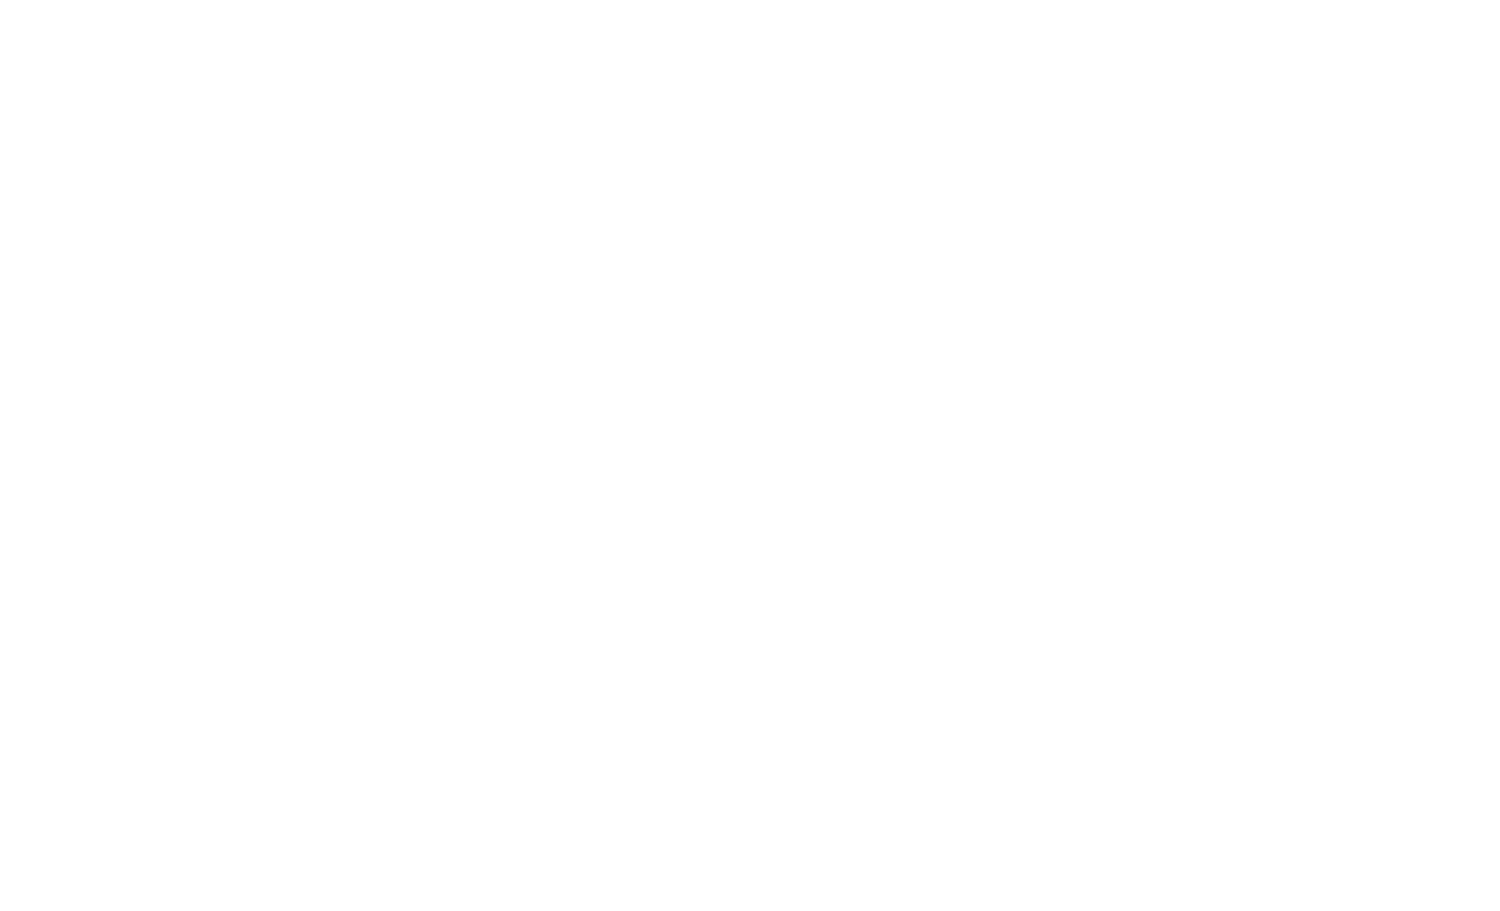 Mount Tamalpais School